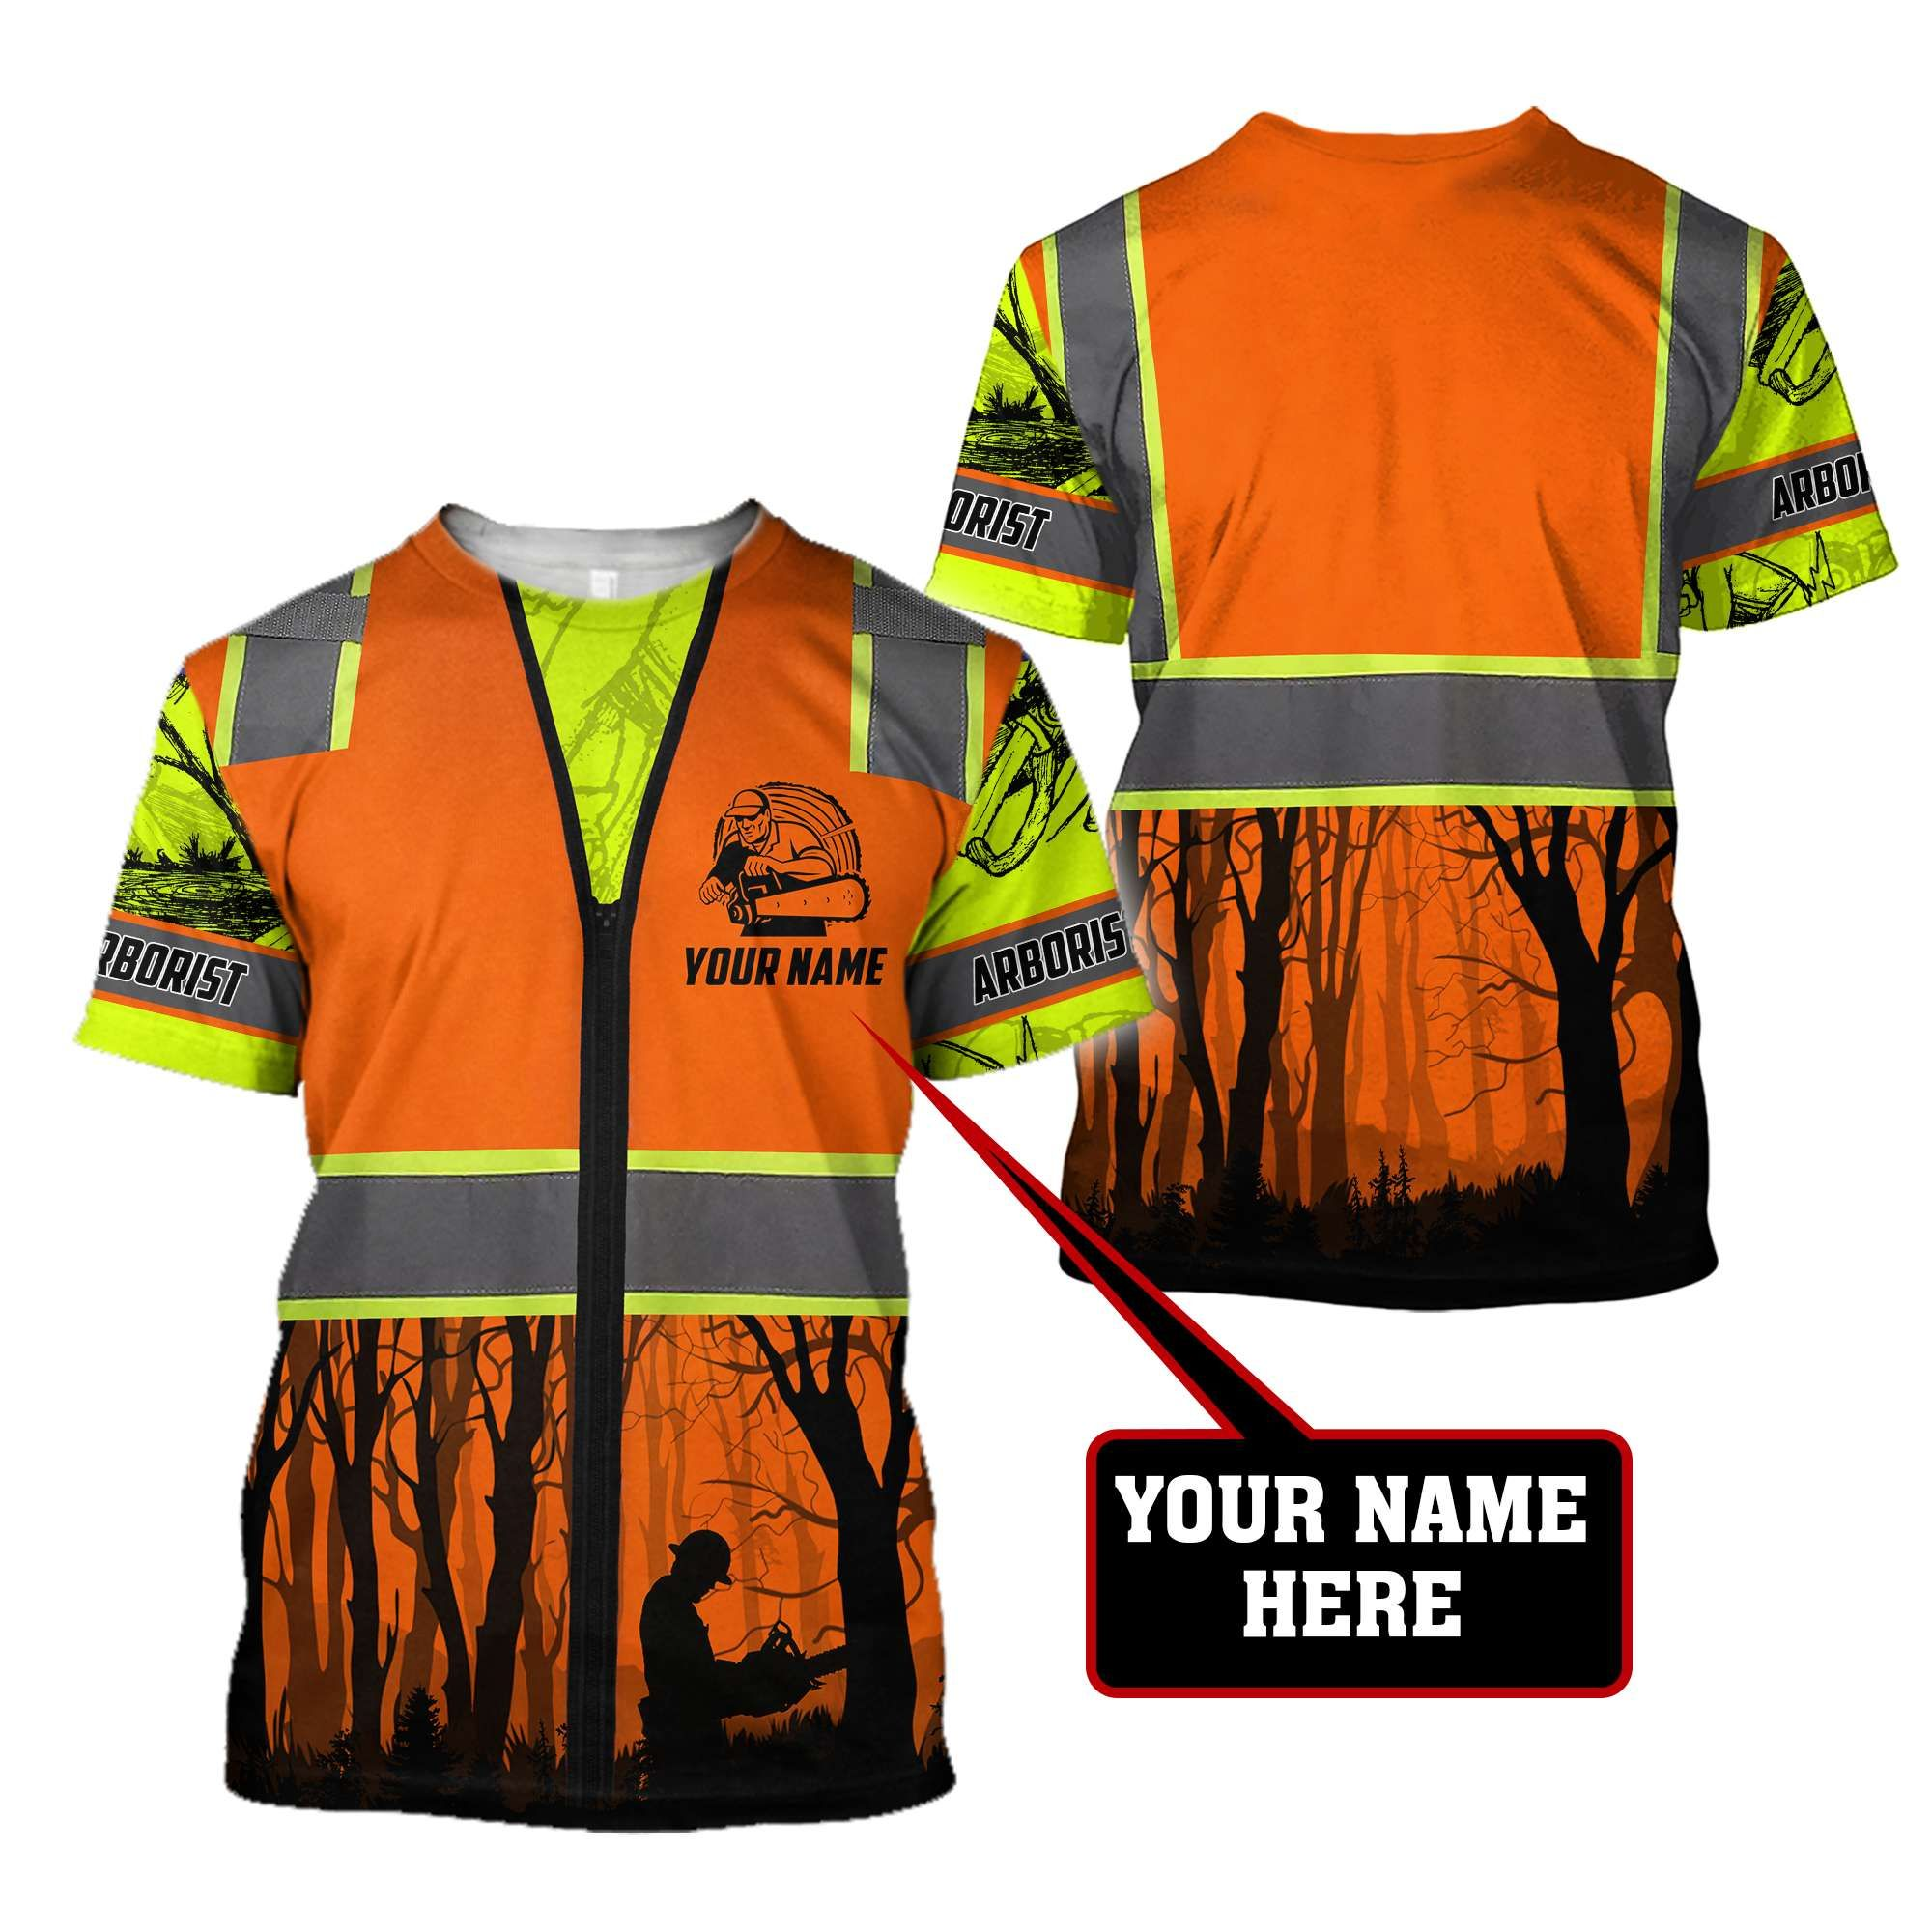 Premium Personalized 3D Printed Arborist Safety MEI - T-Shirt / 3XL